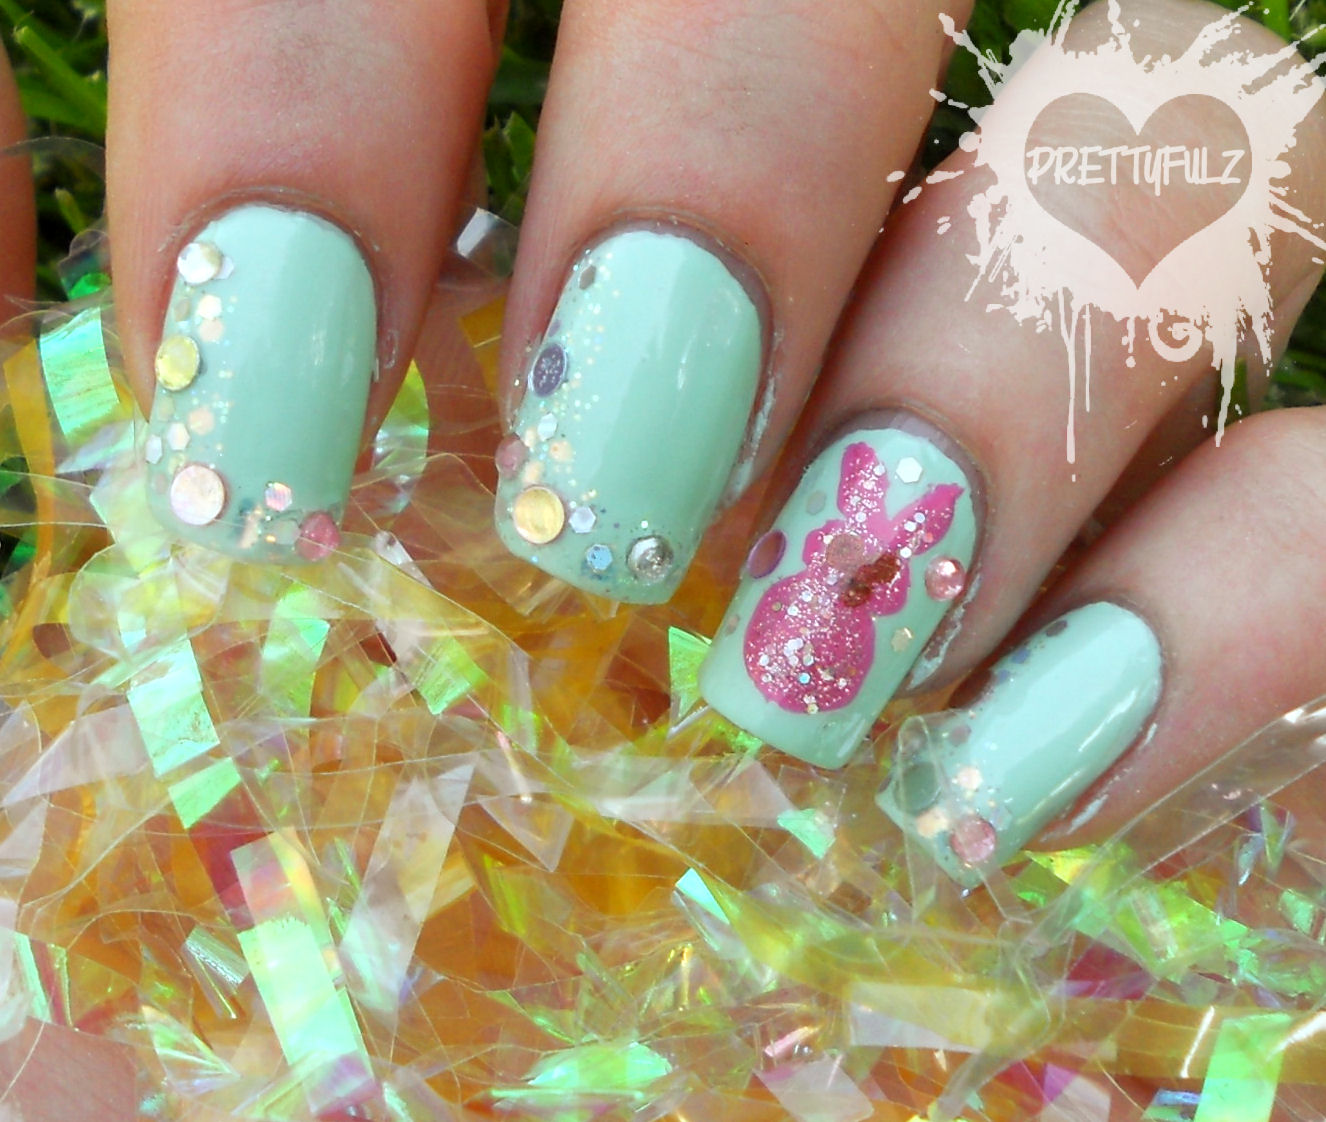 The Cool Cute pink nail designs love Pics